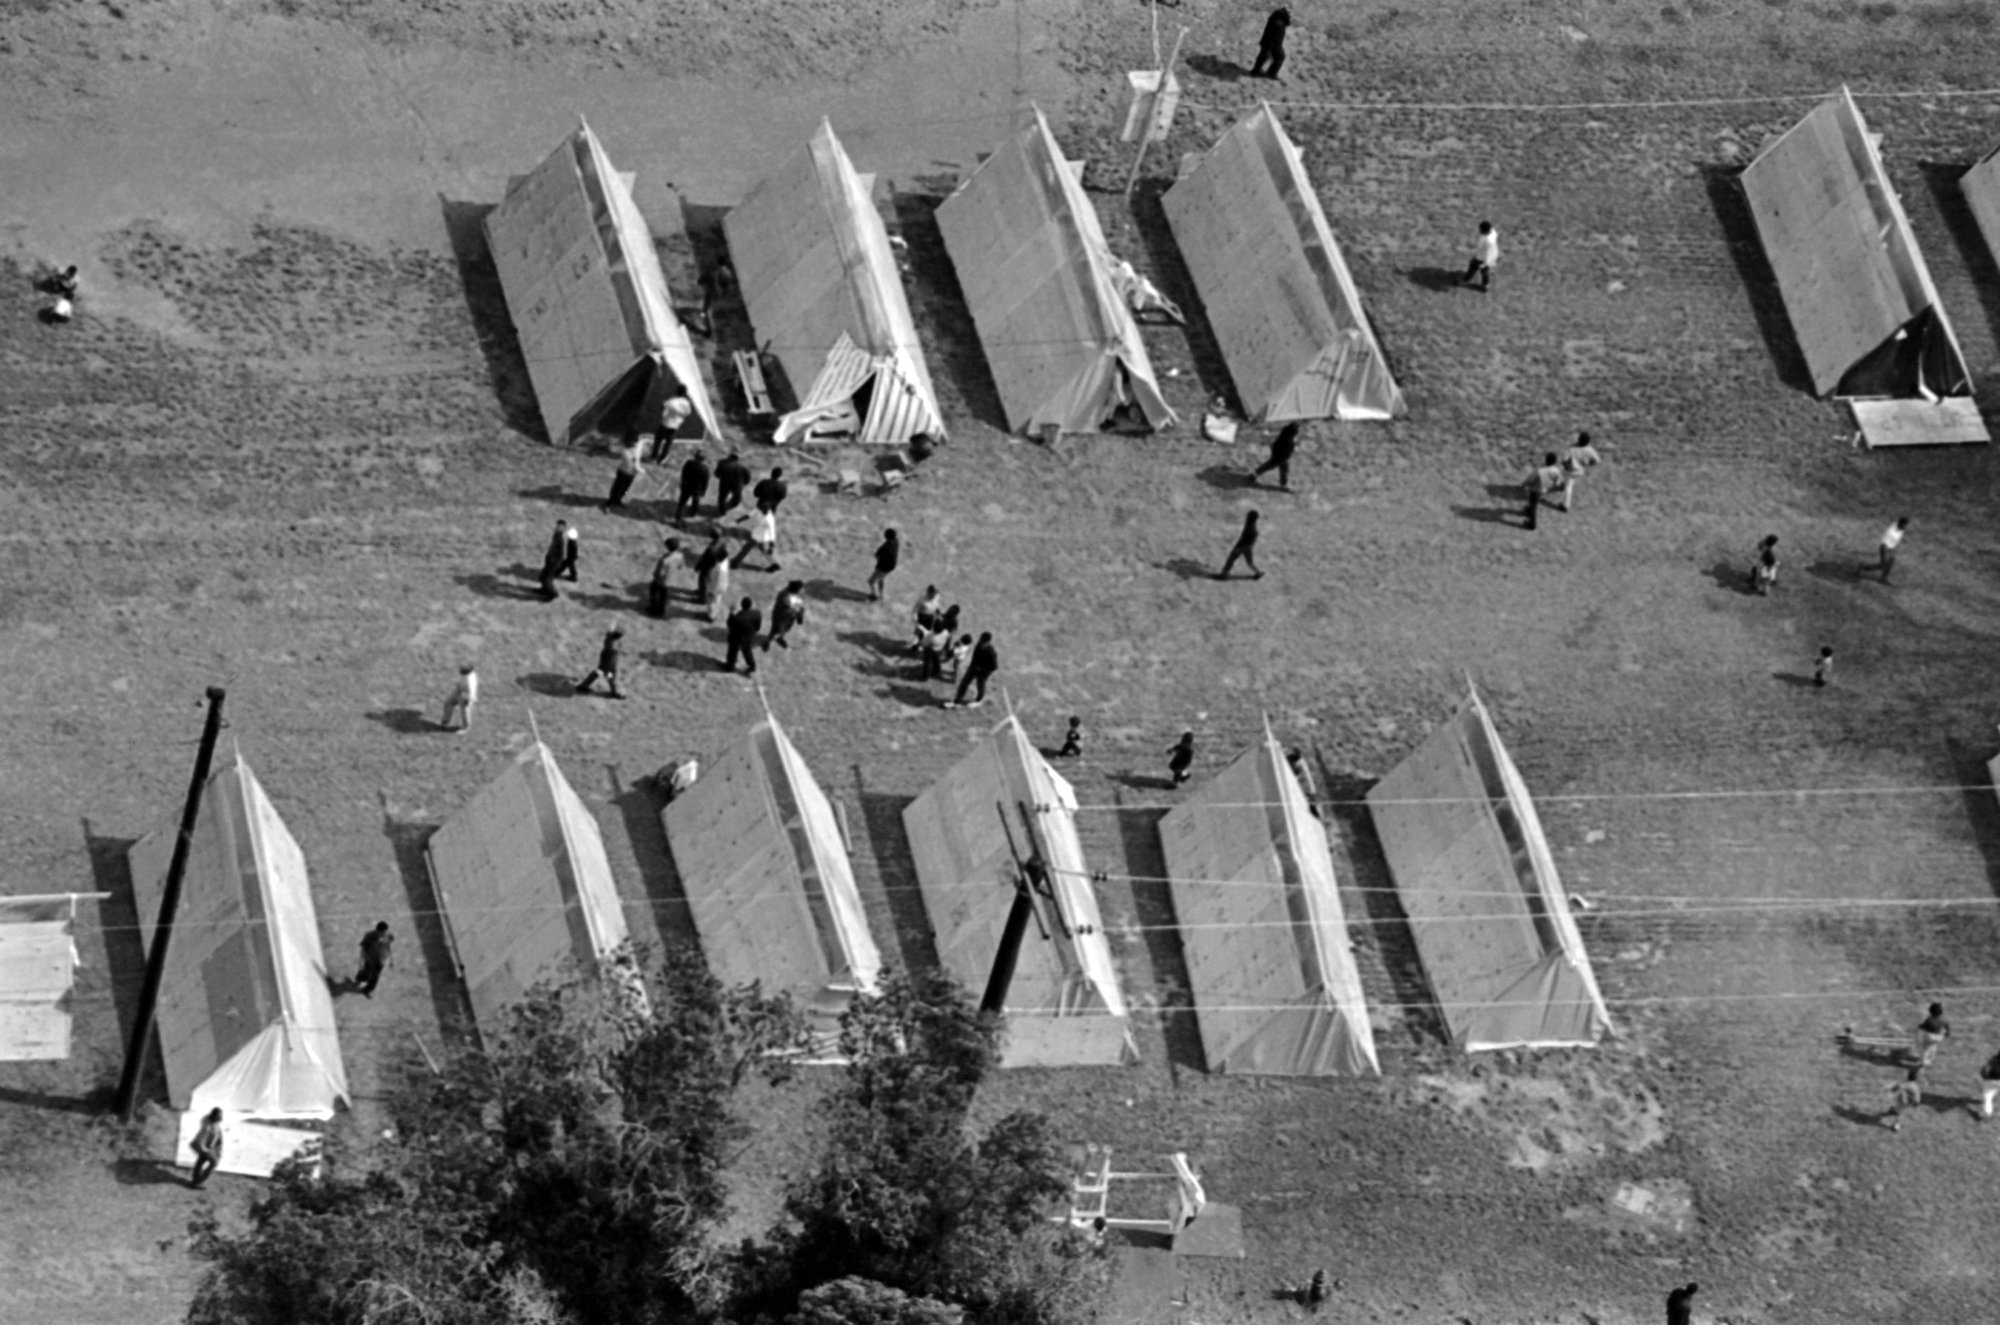 An aerial view of Poor People's Campaign tents, called Resurrection City in Washington, May 1968. (AP Photo/Barry Thumma)